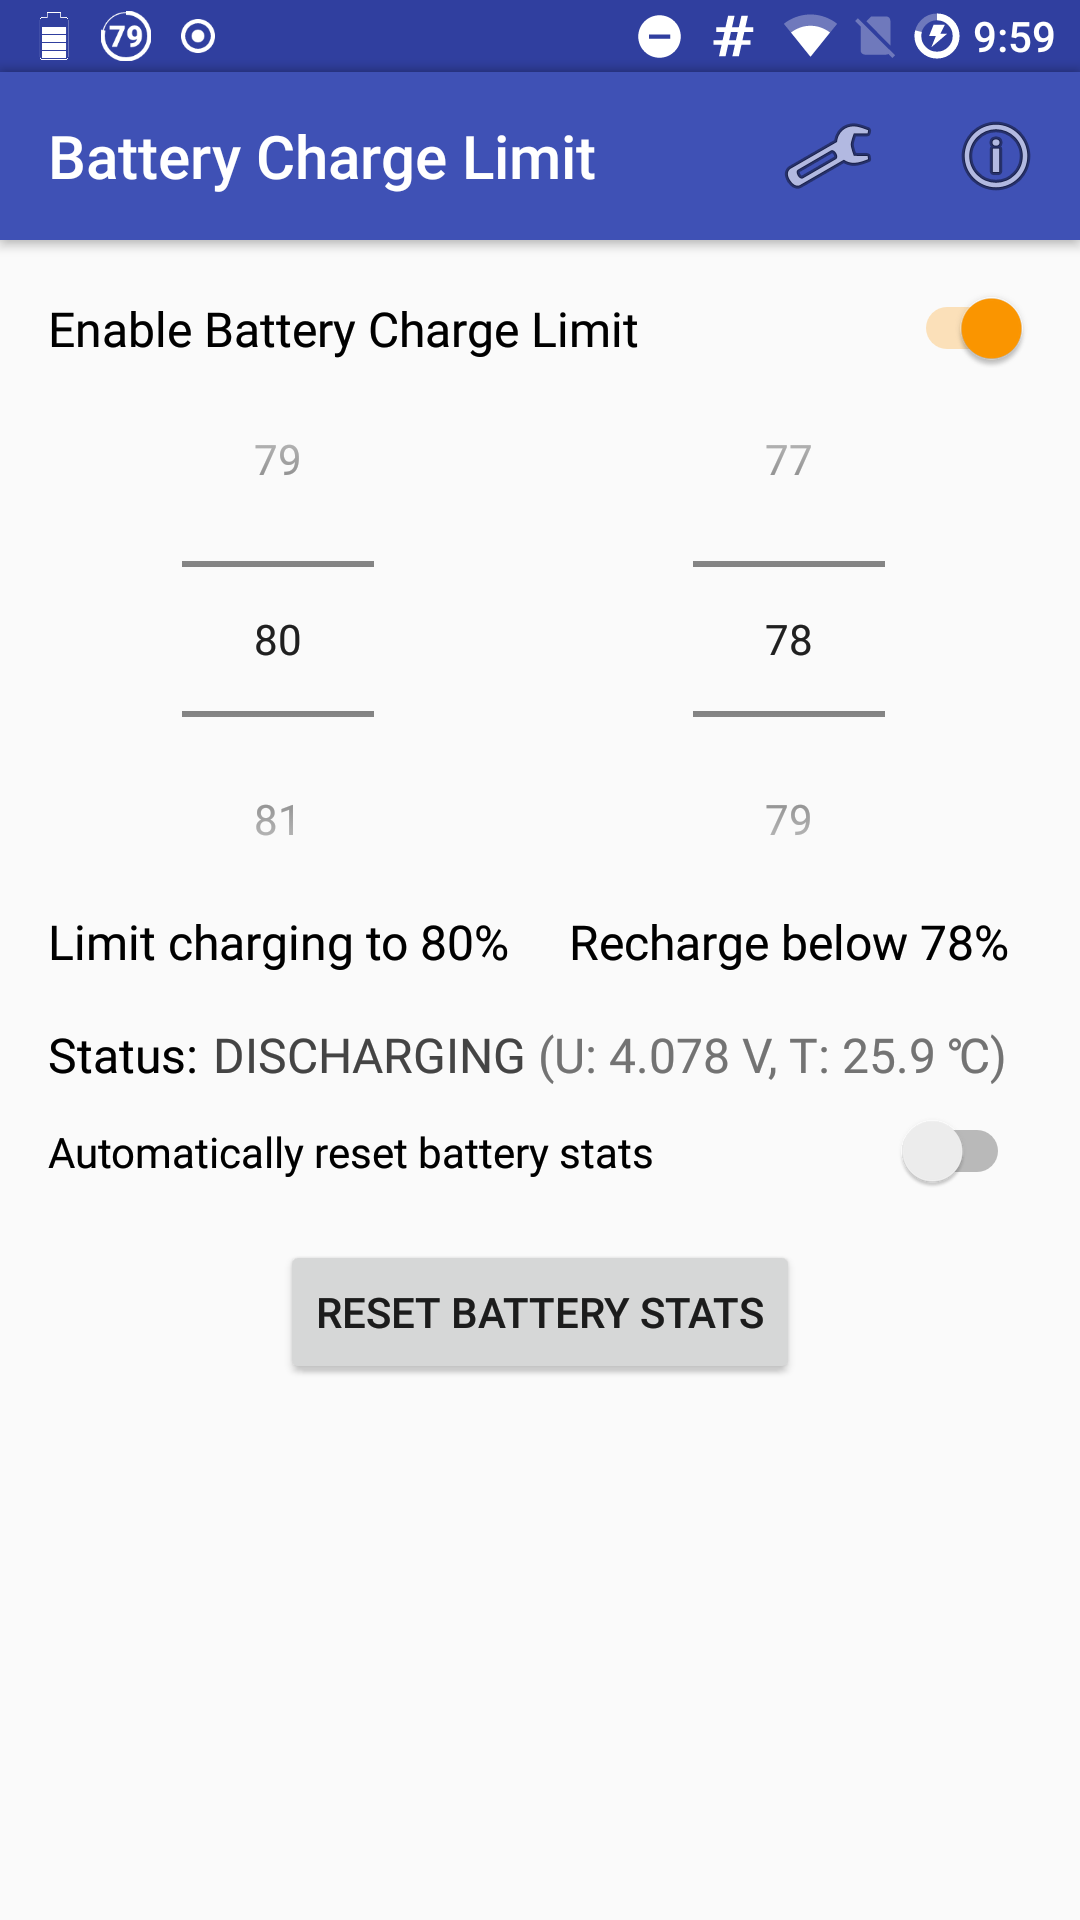 Hands On Battery Charge Limit For Rooted Devices Keeps Your Phones Nexus 5 Circuit Diagram And So Far It Does Exactly What Youd Expect Limits Phone From Charging Past A Certain Point Re Enables Below